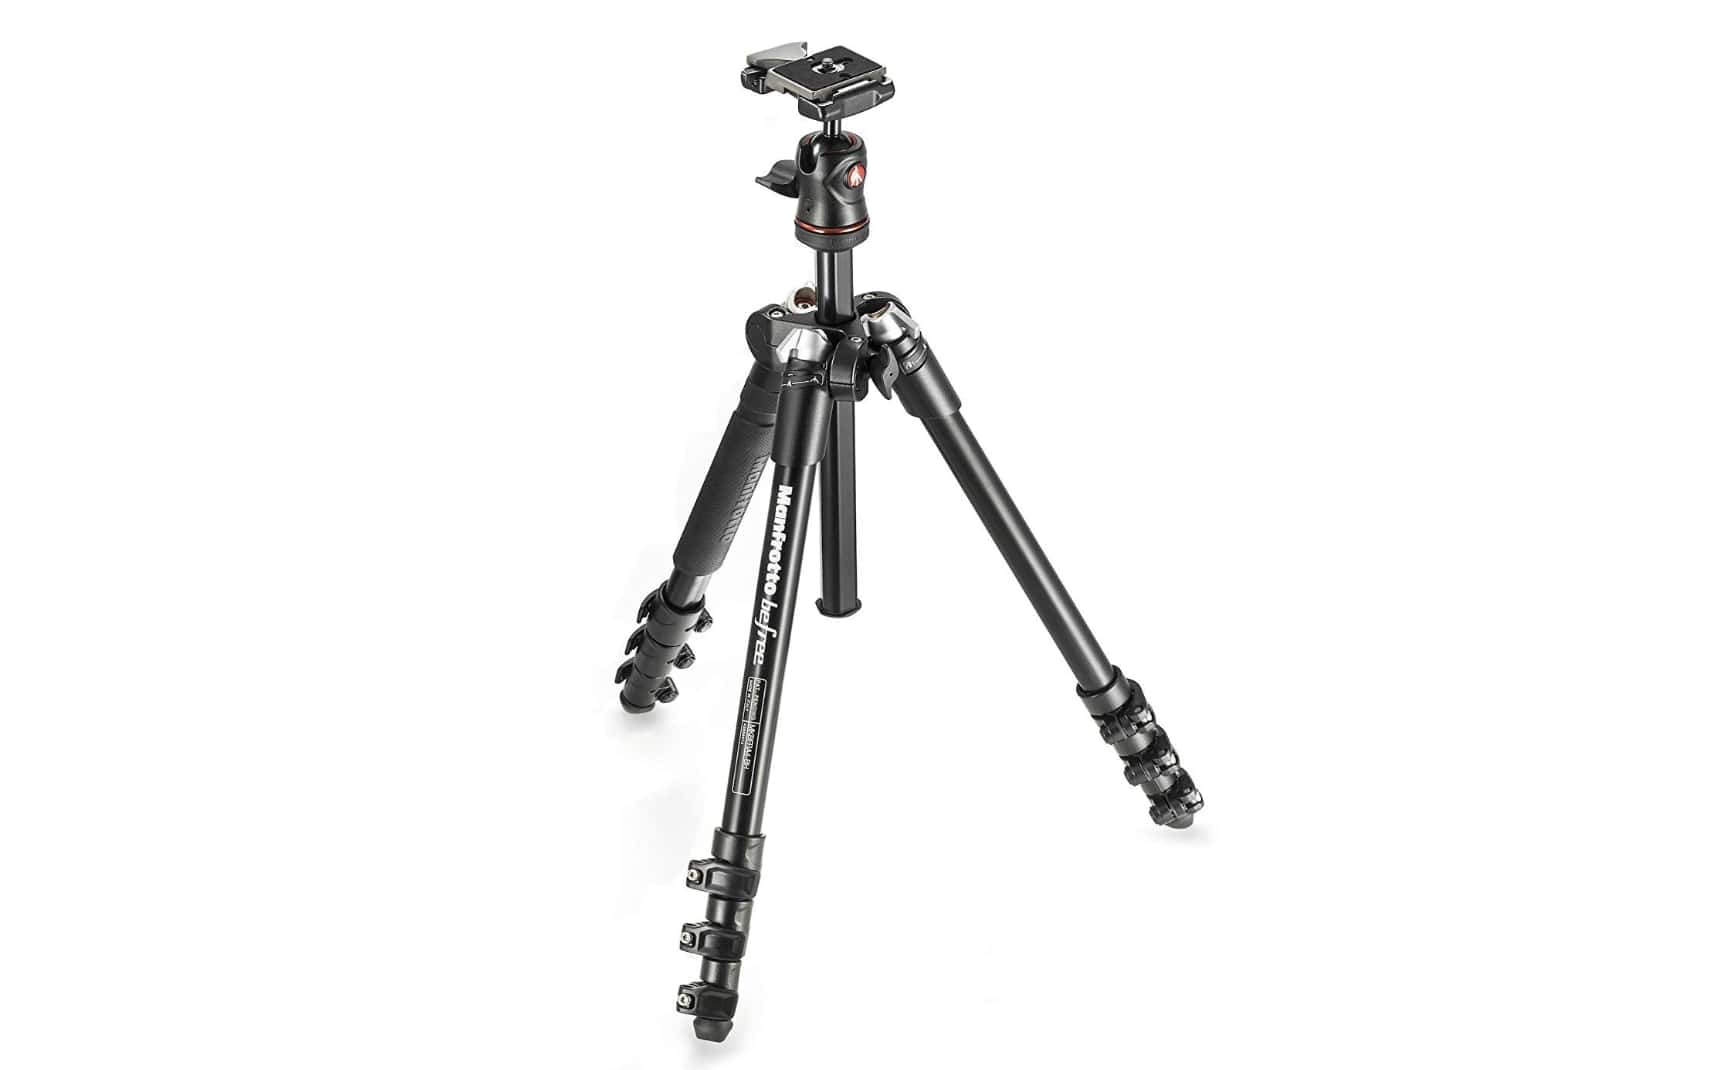 Manfrotto MKBFRA4-BH BeFree Compact Tripod Review canon EOS DSLR